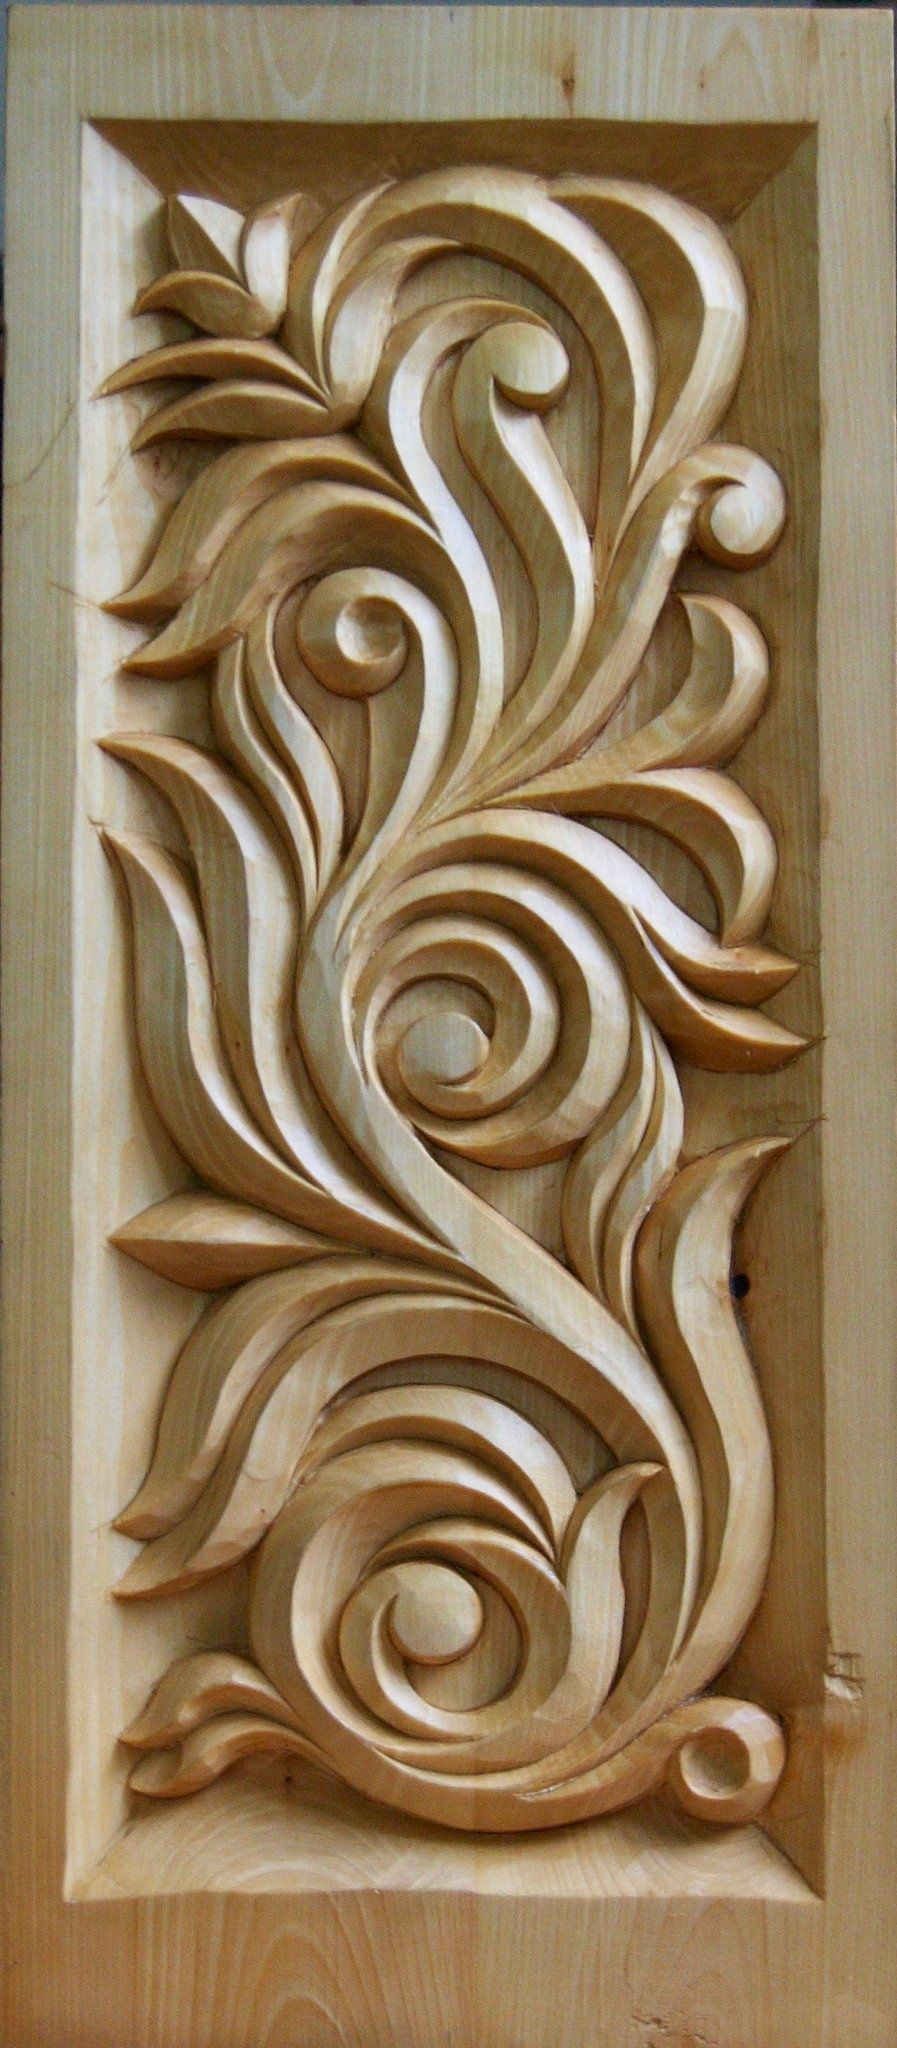 Types Of Wood Wood Carving Designs Wood Carving Art Wood Carving Patterns